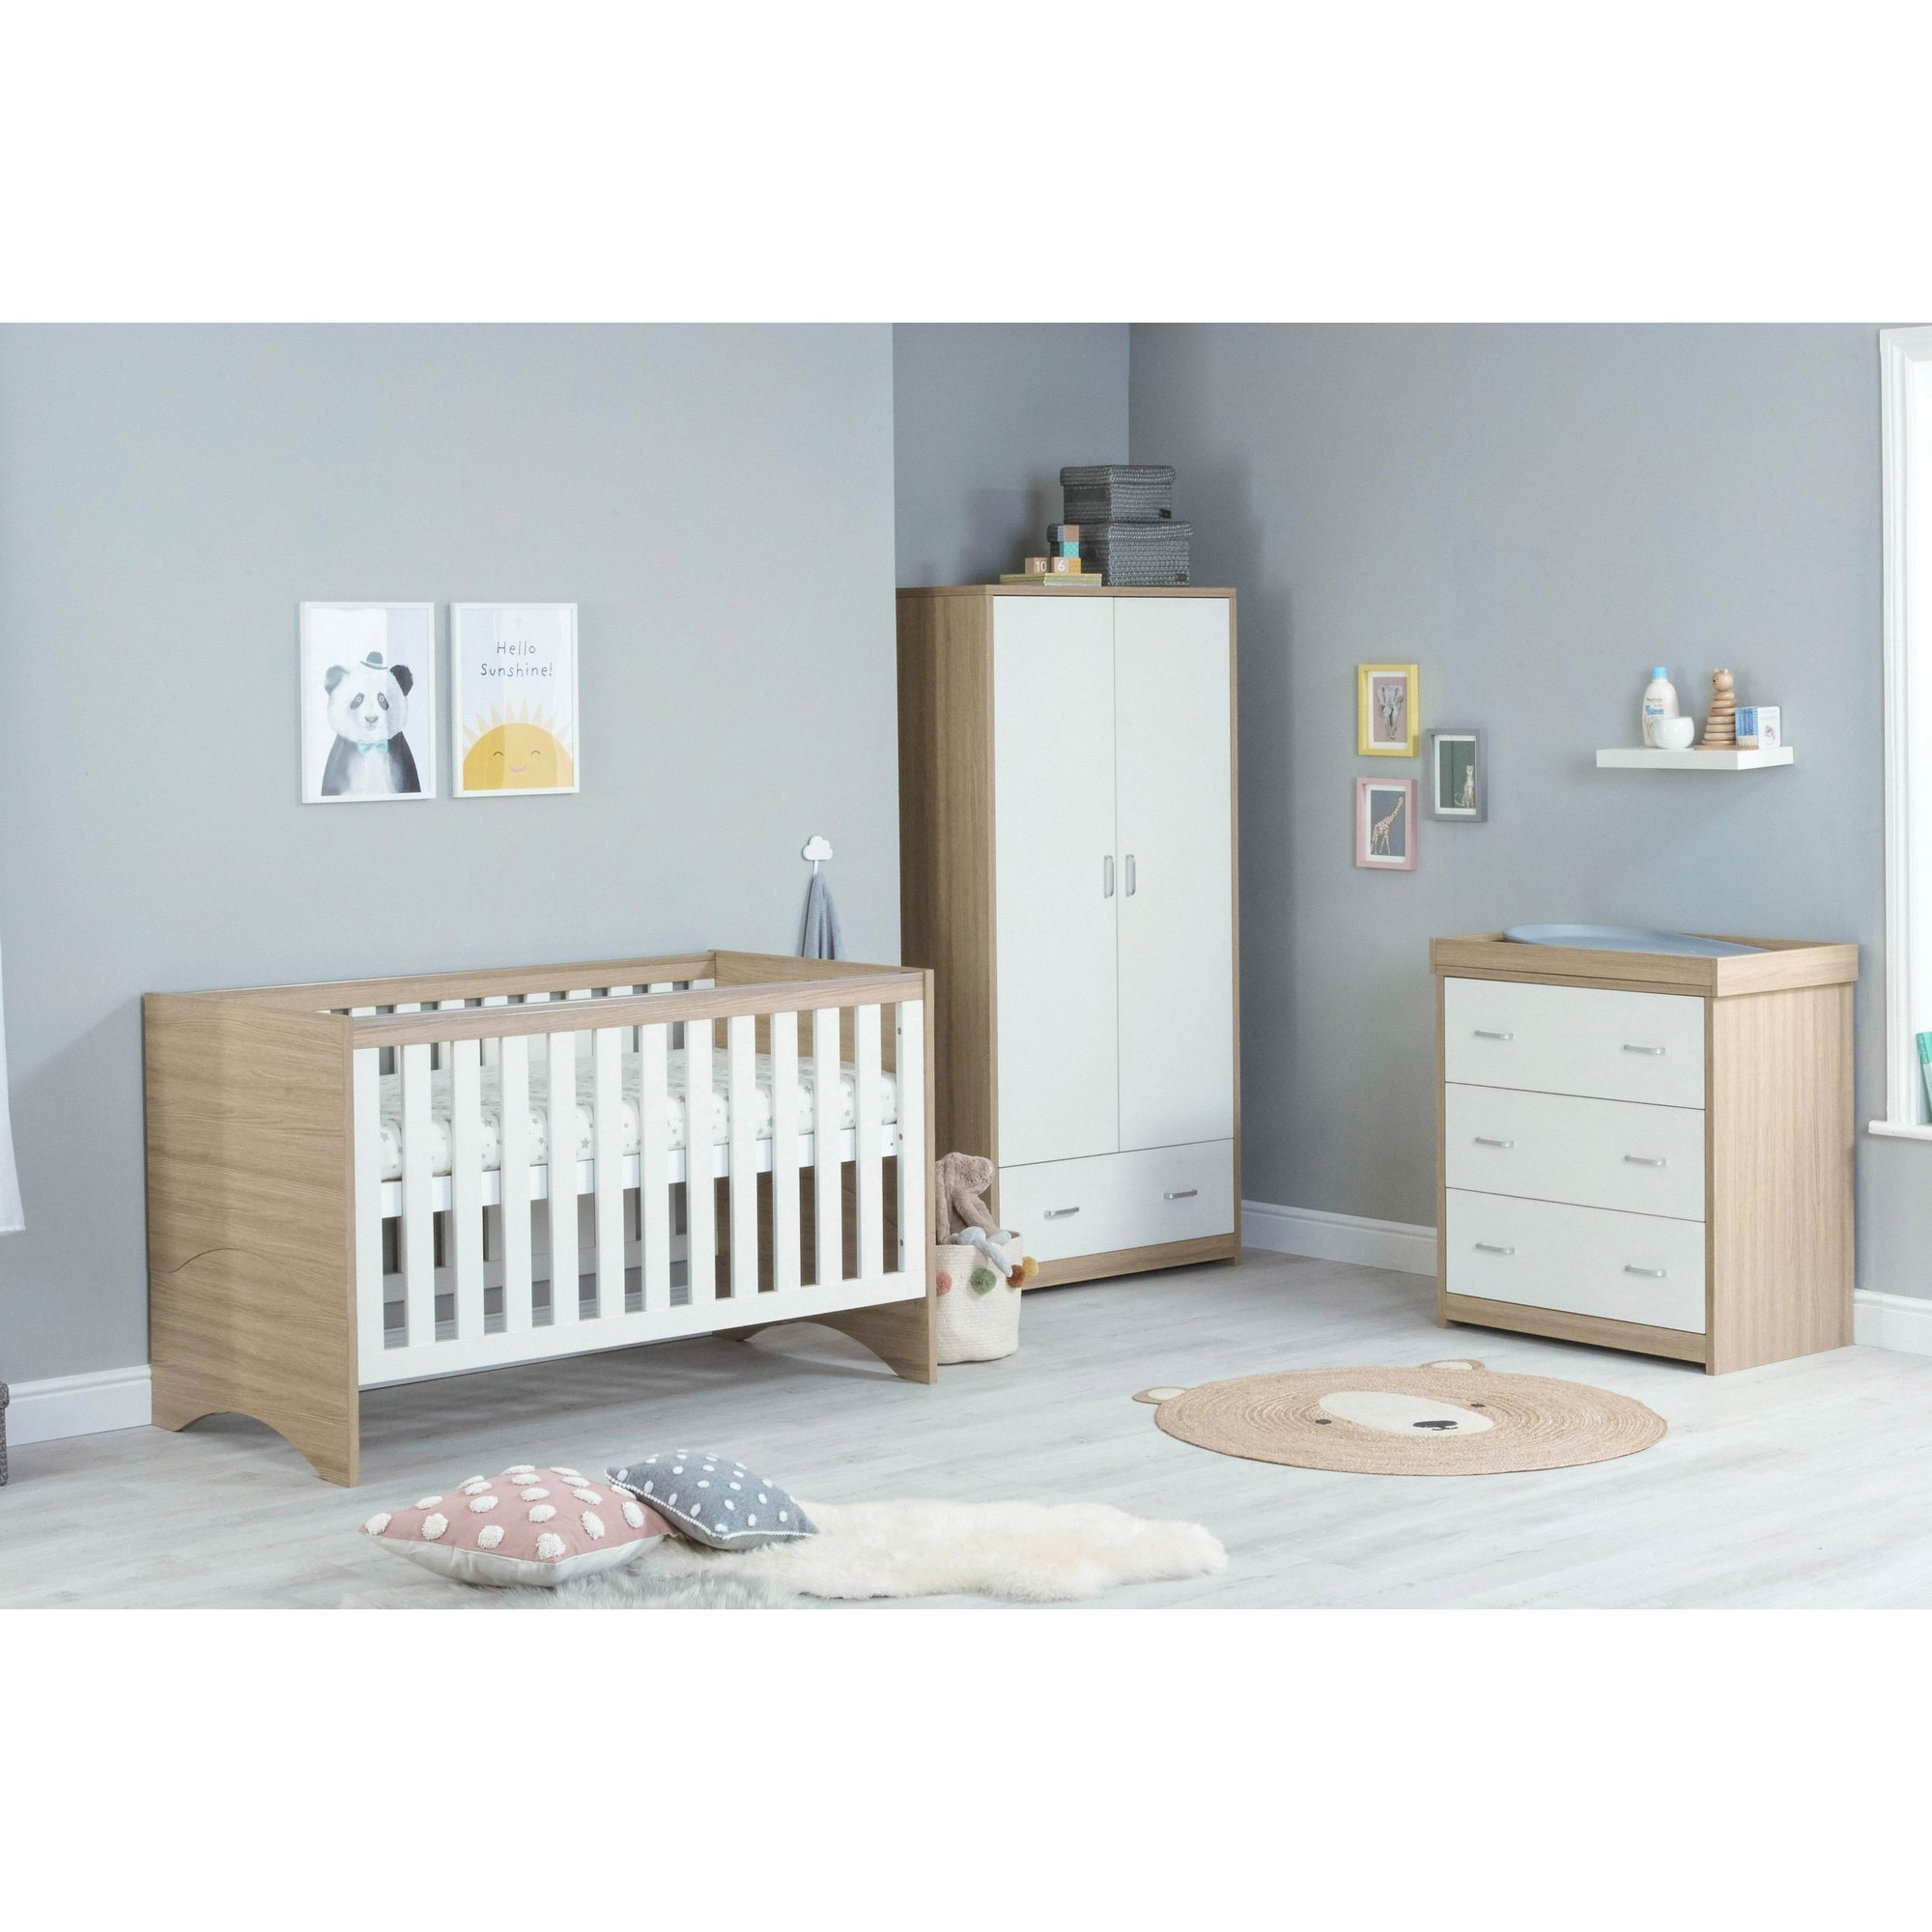 Image of 3 Piece Veni White Oak Cot Bed Chest and Wardrobe Room Set